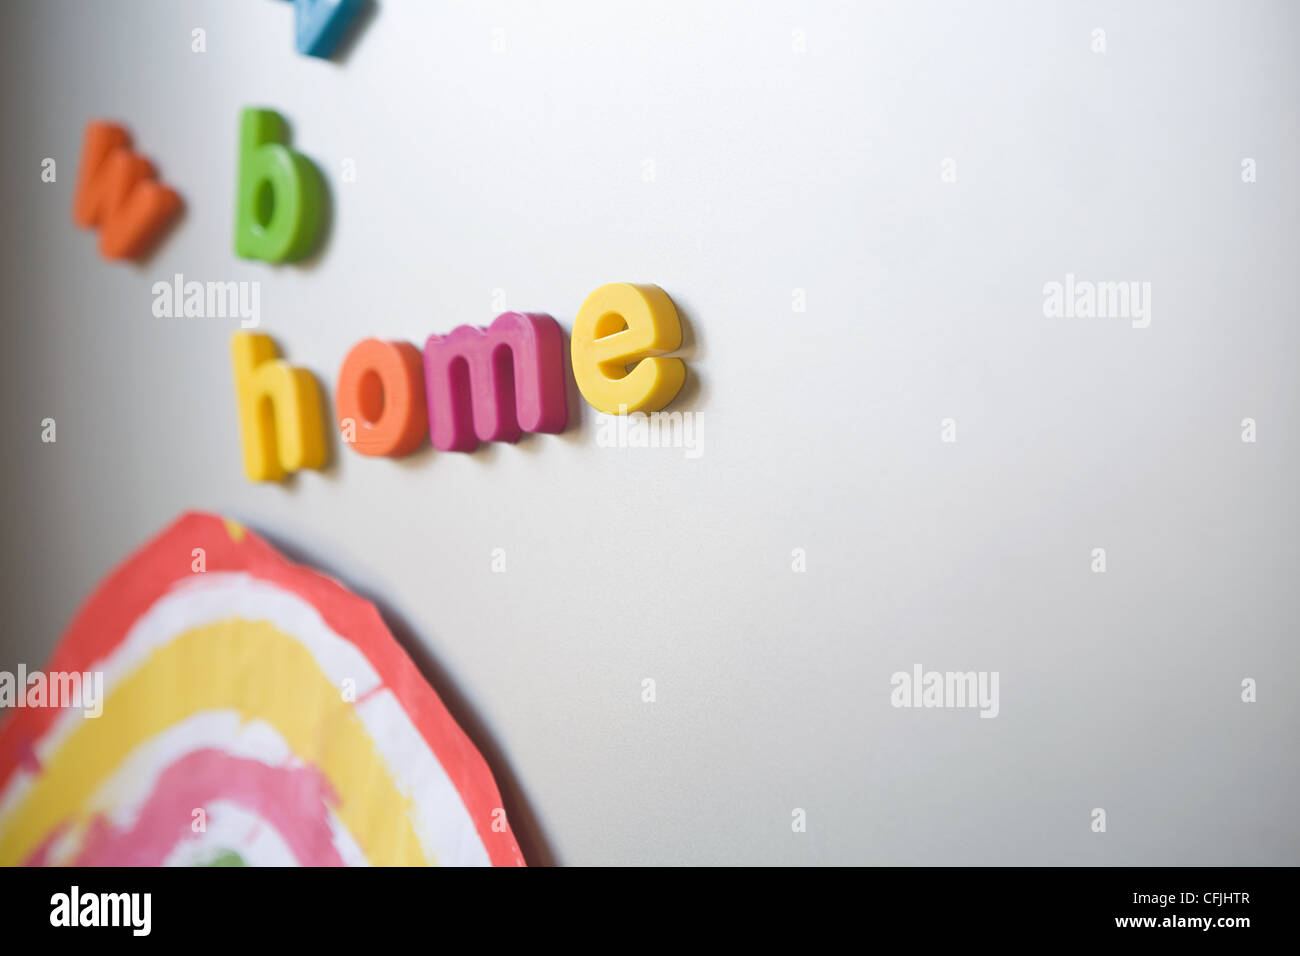 Letters spelling 'home' on family refrigerator - Stock Image